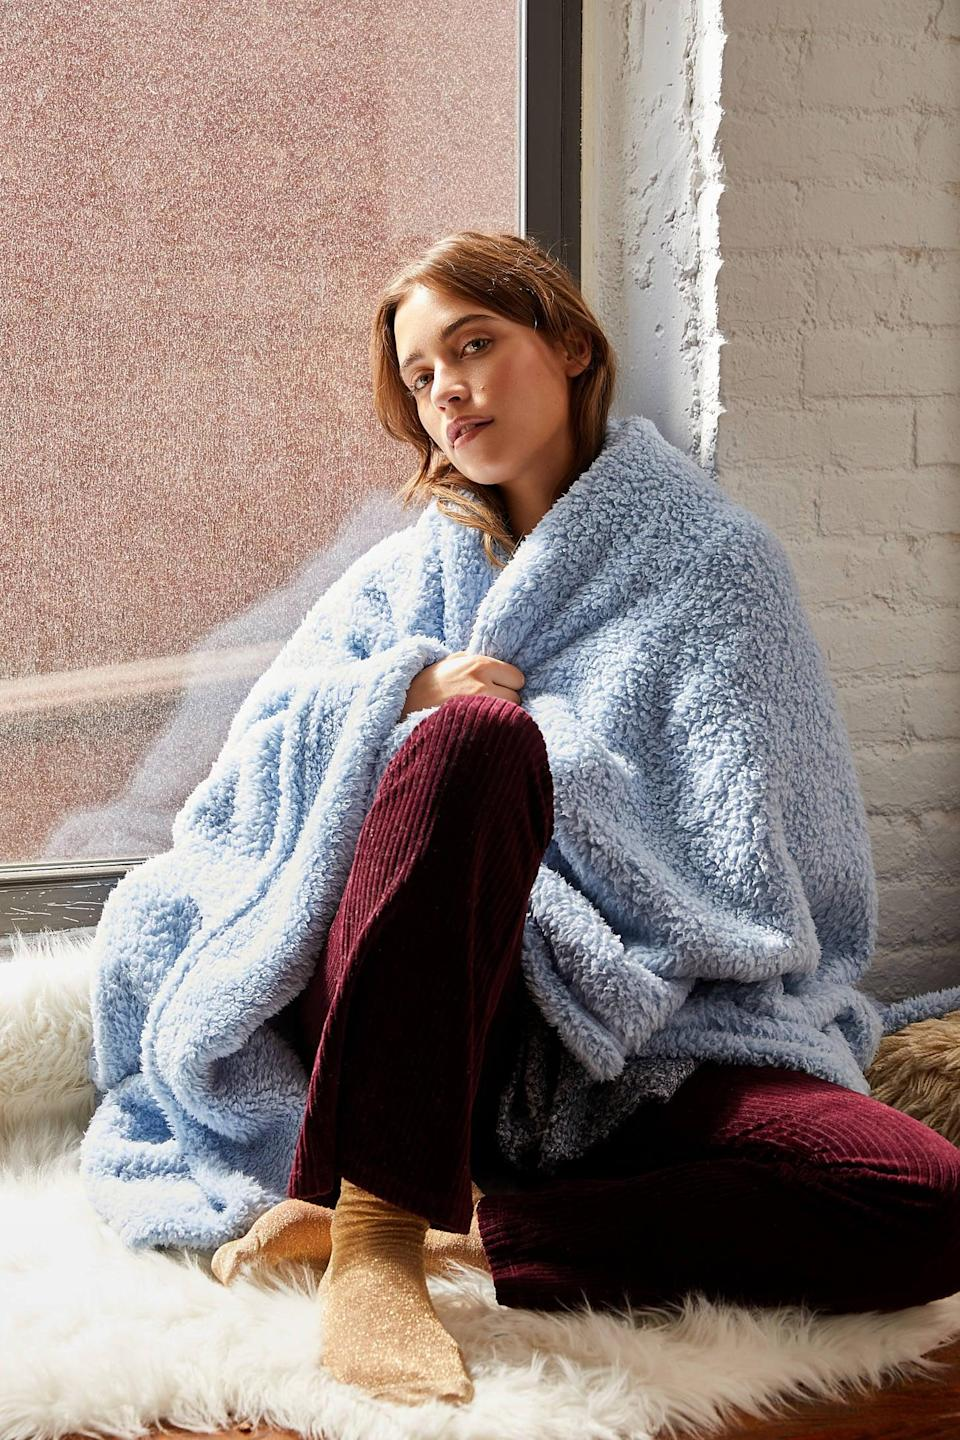 """<p>This <a href=""""https://www.popsugar.com/buy/Amped-Fleece-Throw-Blanket-560404?p_name=Amped%20Fleece%20Throw%20Blanket&retailer=urbanoutfitters.com&pid=560404&price=39&evar1=casa%3Aus&evar9=46598422&evar98=https%3A%2F%2Fwww.popsugar.com%2Fhome%2Fphoto-gallery%2F46598422%2Fimage%2F47342587%2FAmped-Fleece-Throw-Blanket&list1=shopping%2Chome%20decor%2Chome%20shopping&prop13=mobile&pdata=1"""" class=""""link rapid-noclick-resp"""" rel=""""nofollow noopener"""" target=""""_blank"""" data-ylk=""""slk:Amped Fleece Throw Blanket"""">Amped Fleece Throw Blanket</a> ($39, originally $49) comes in so many fun colors.</p>"""